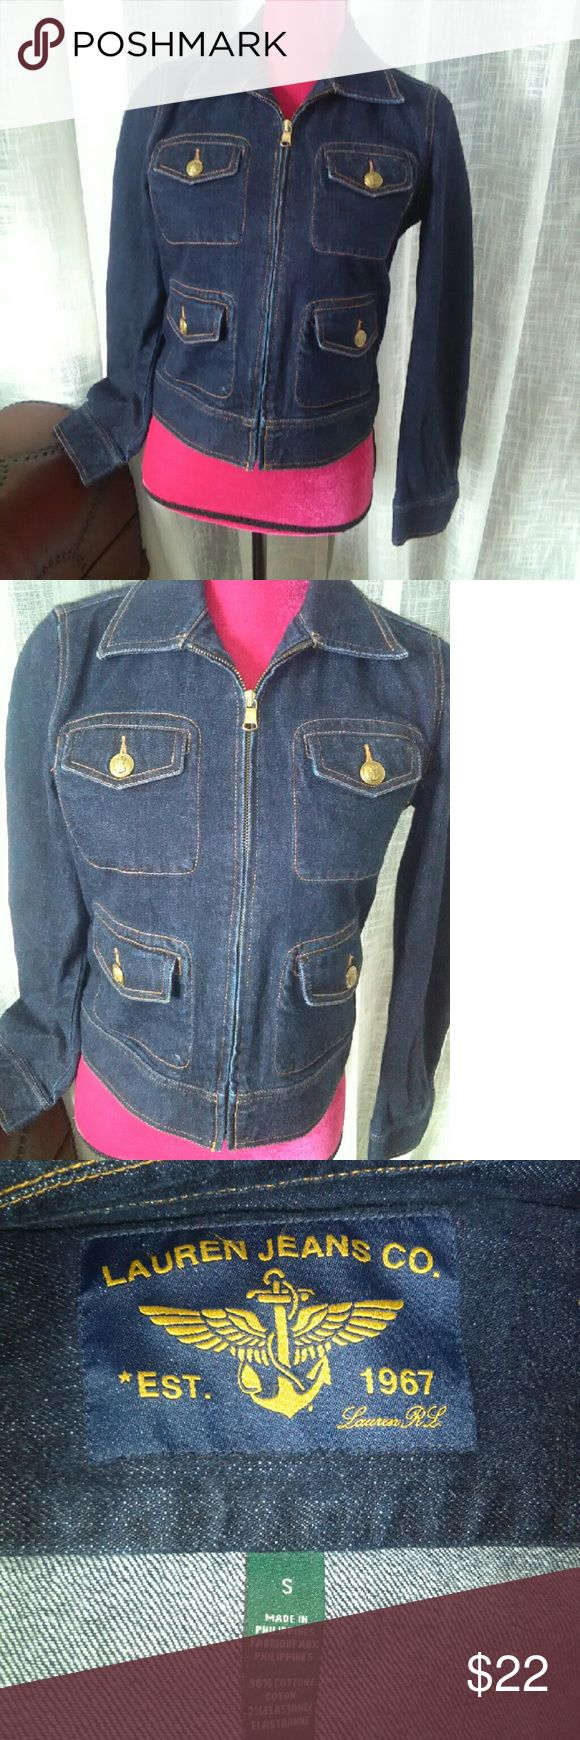 Like New Lauren Jean Co.  Dark Denim Jacket (s) This is a like new dark blue zip up denim jacket,  with gold tone button accents.  This is by Lauren Jean Co.  And is a small.  This is a great addition to anyone's closet!   Thank you for stopping by and looking! Lauren Jeans Co.   Jackets & Coats Jean Jackets